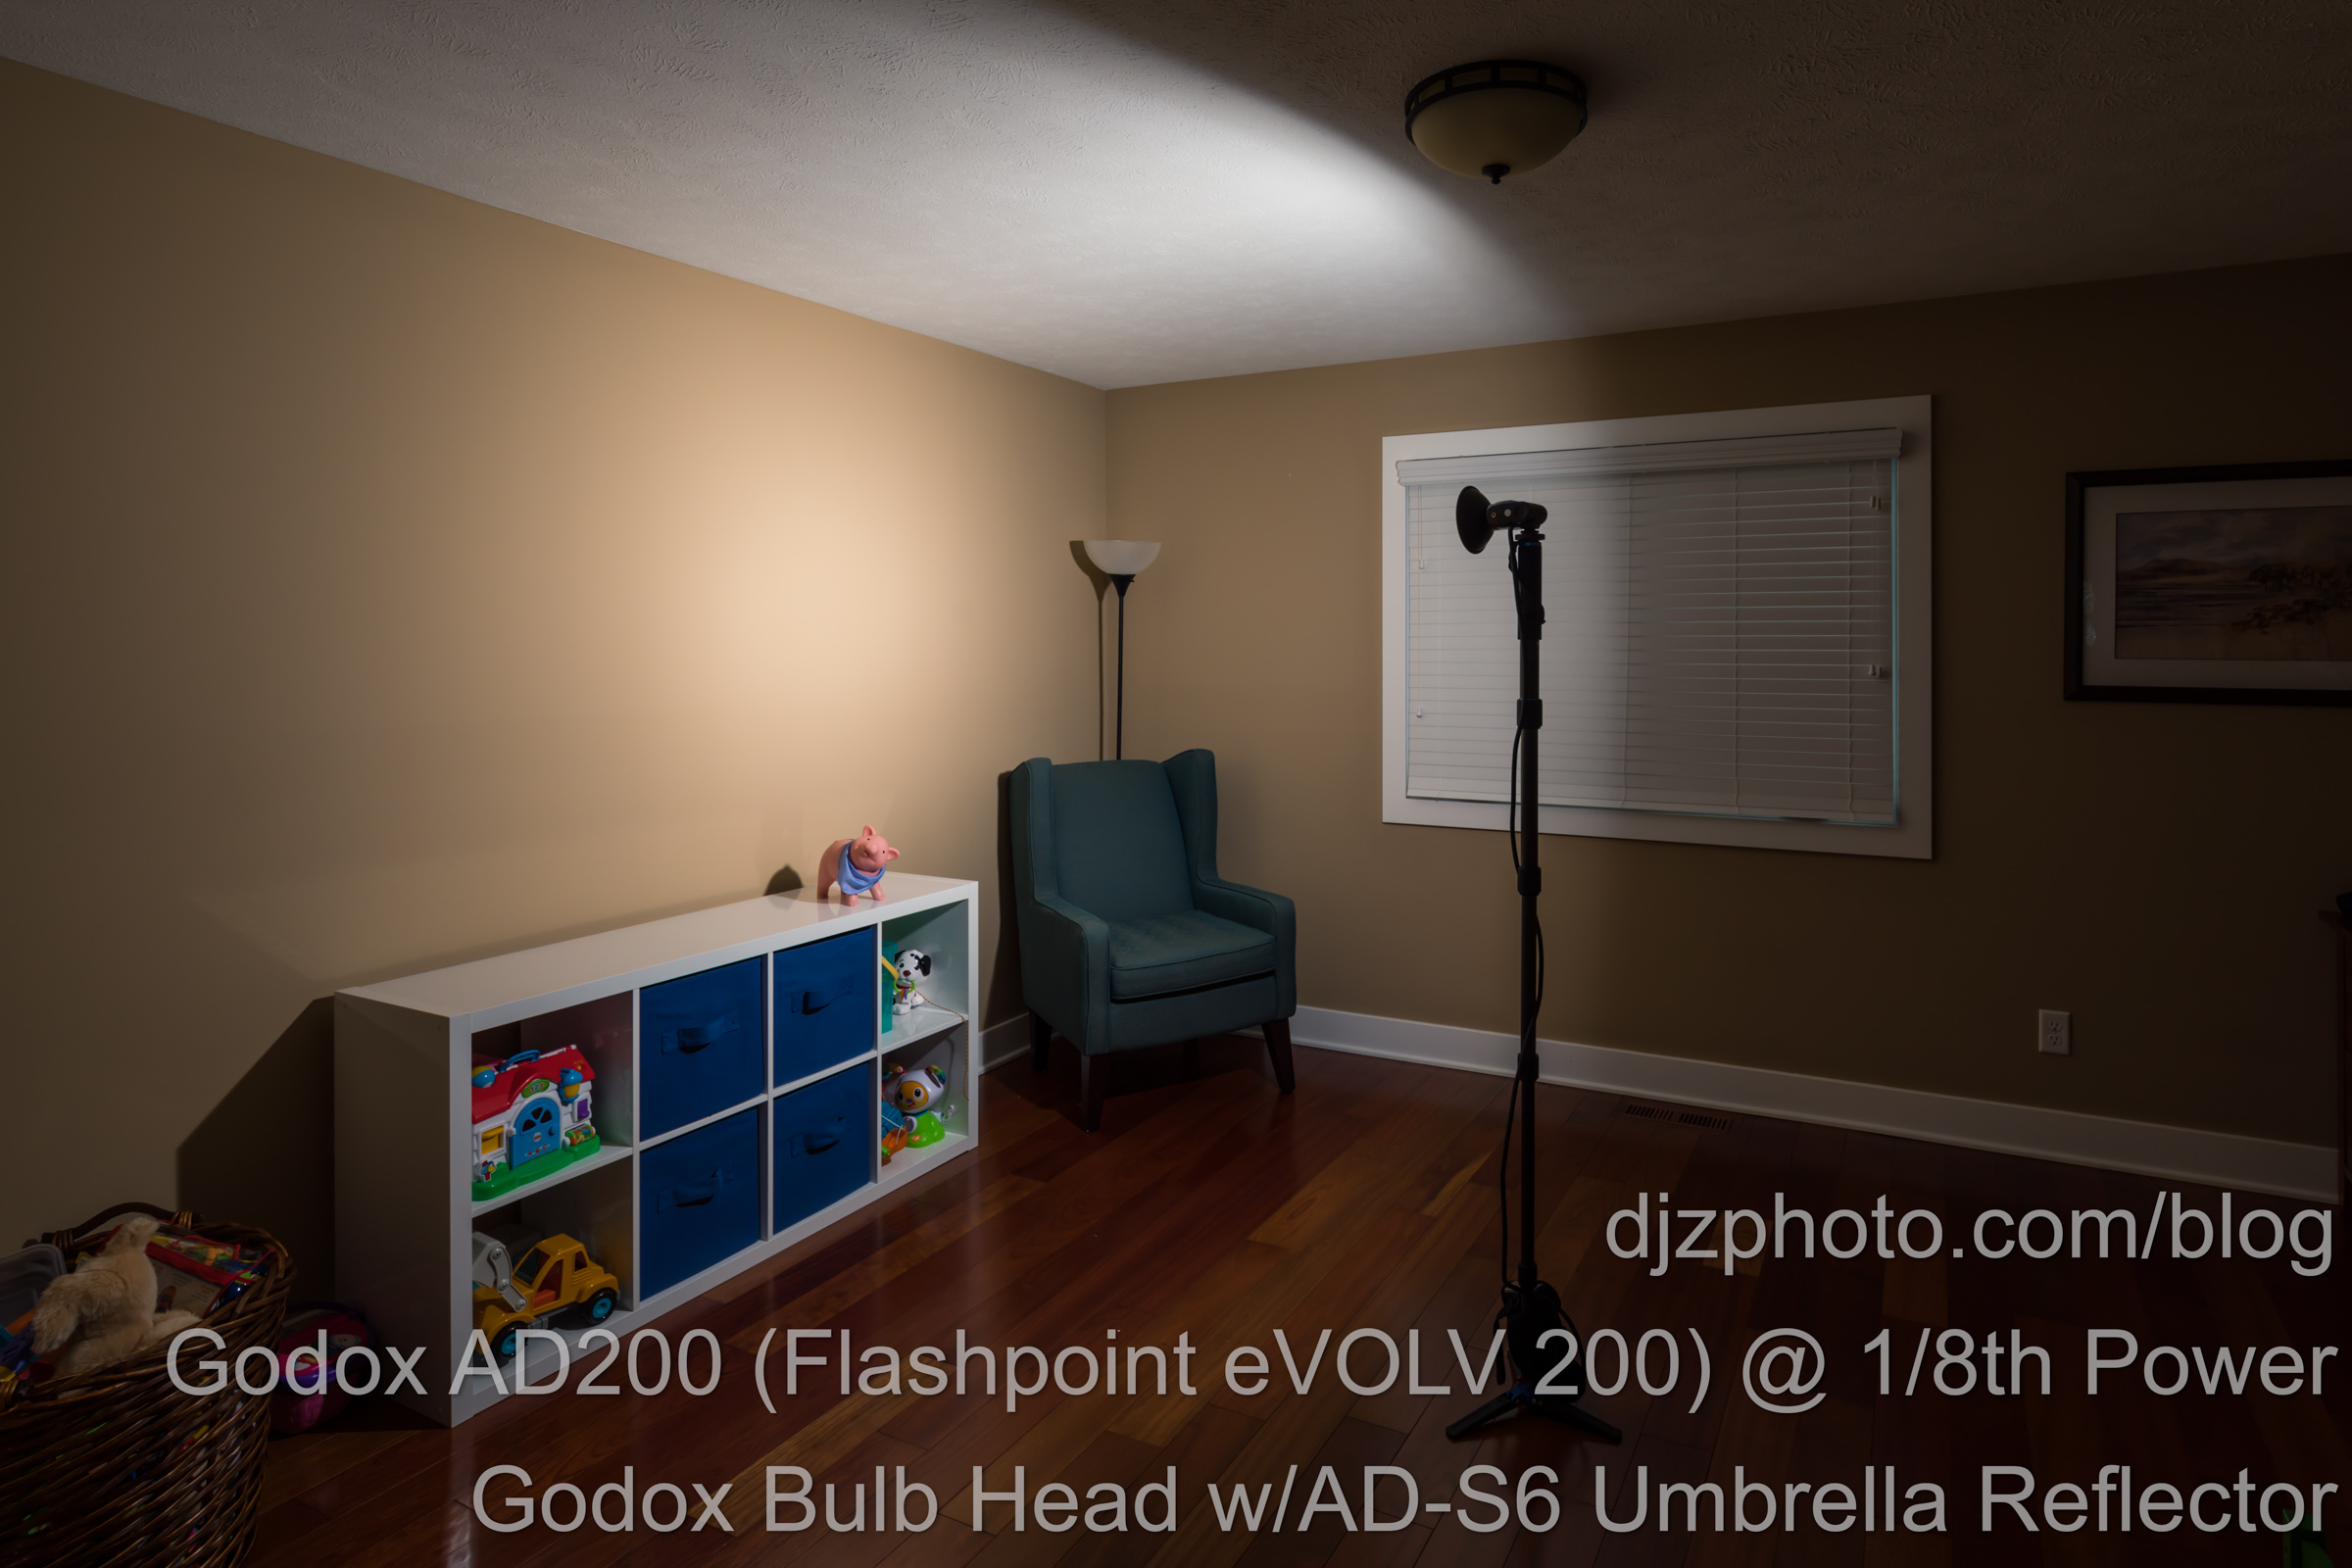 Godox AD200 Bulb Head with Umbrella Reflector